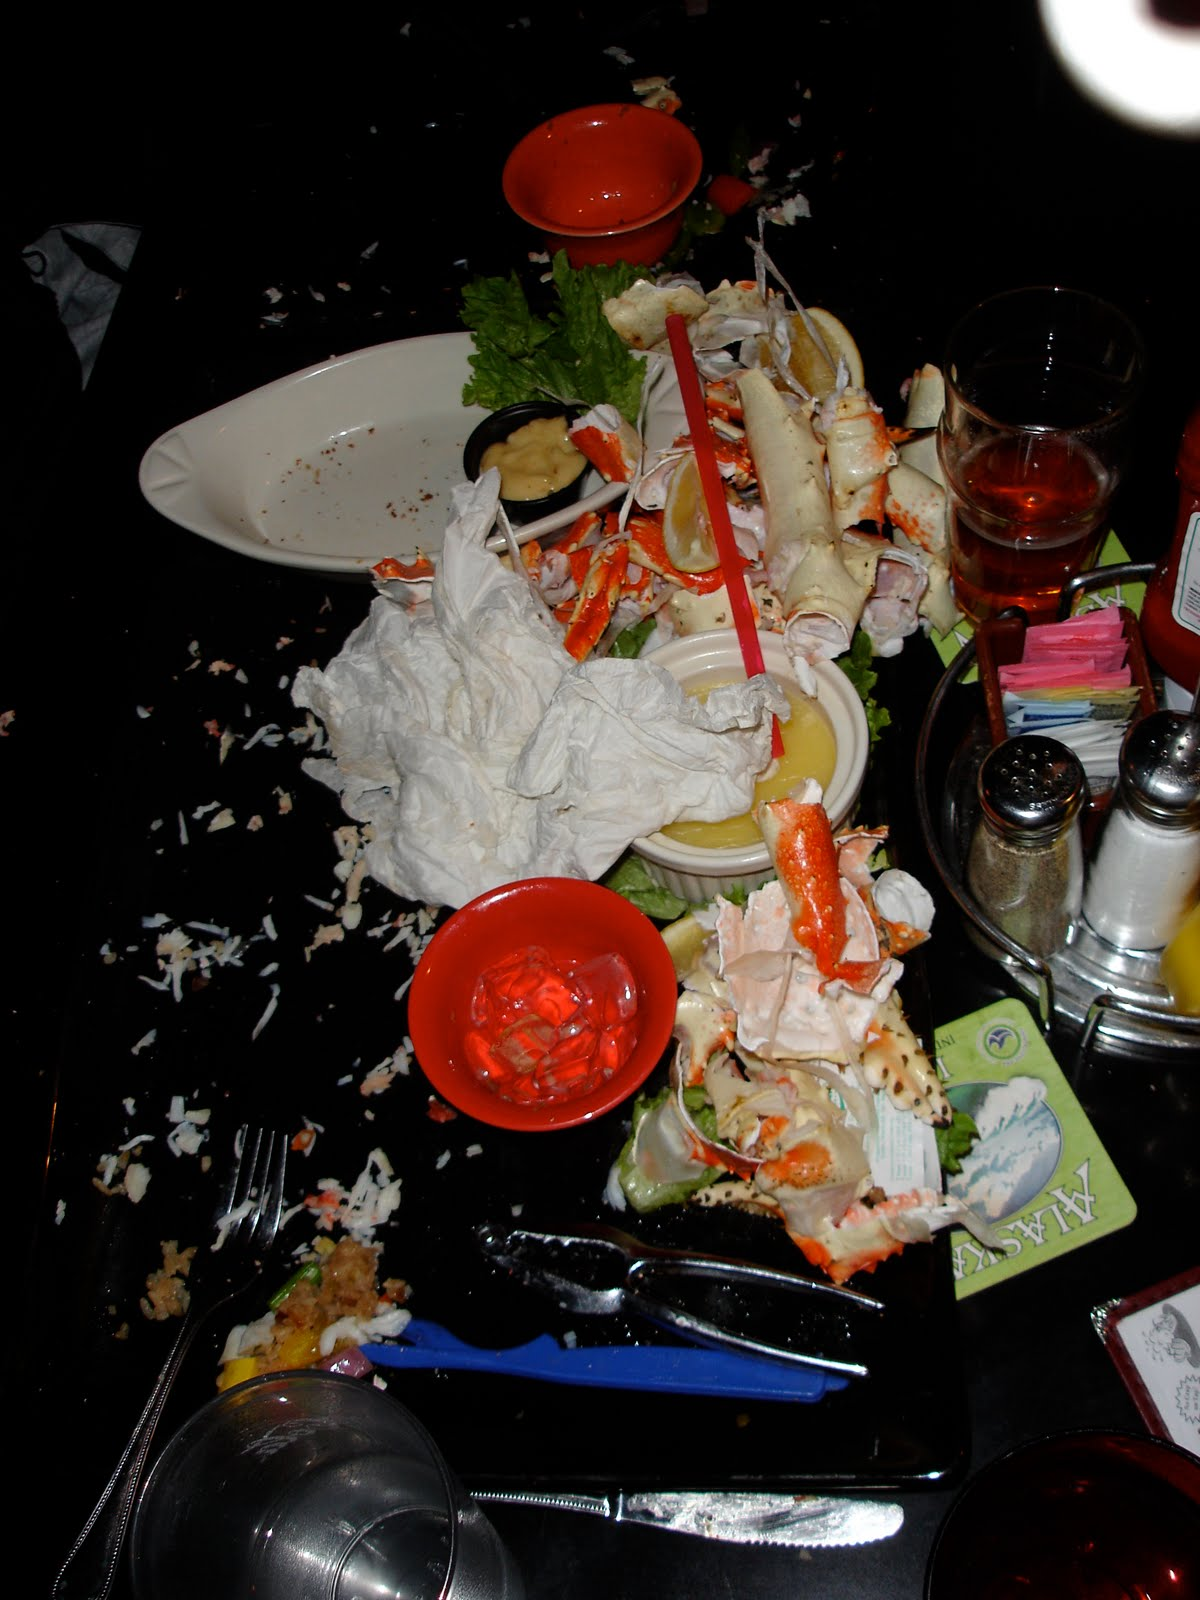 The completed platter from the Kodiak Arrest Challenge at Humpys